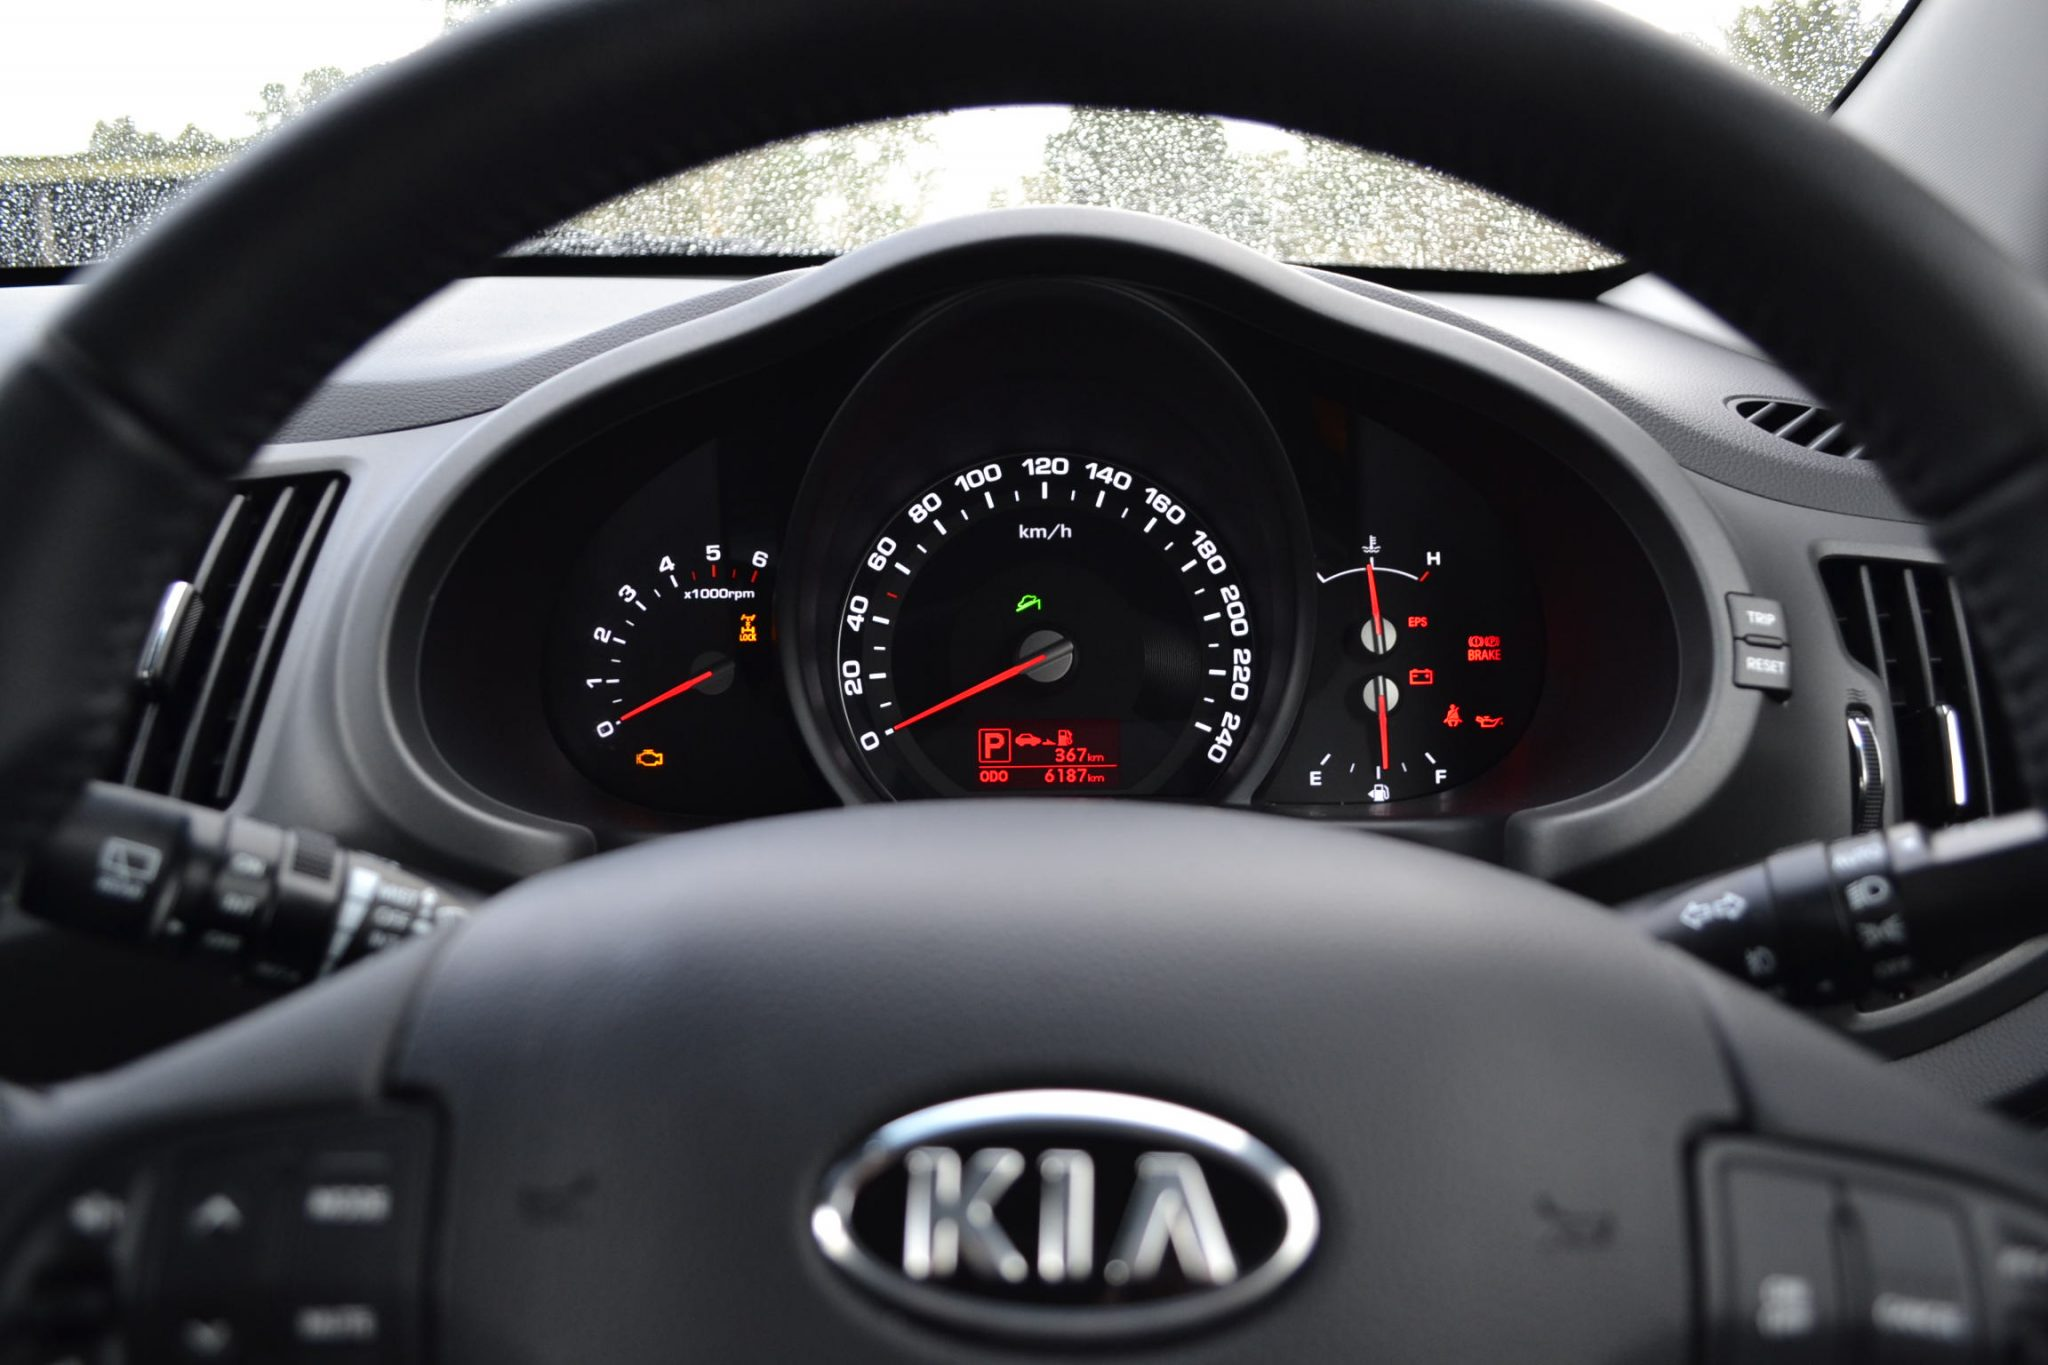 Kia sportage review 2012 sli diesel automatic gauges forcegt kia sportage review 2012 sli diesel automatic gauges sciox Gallery